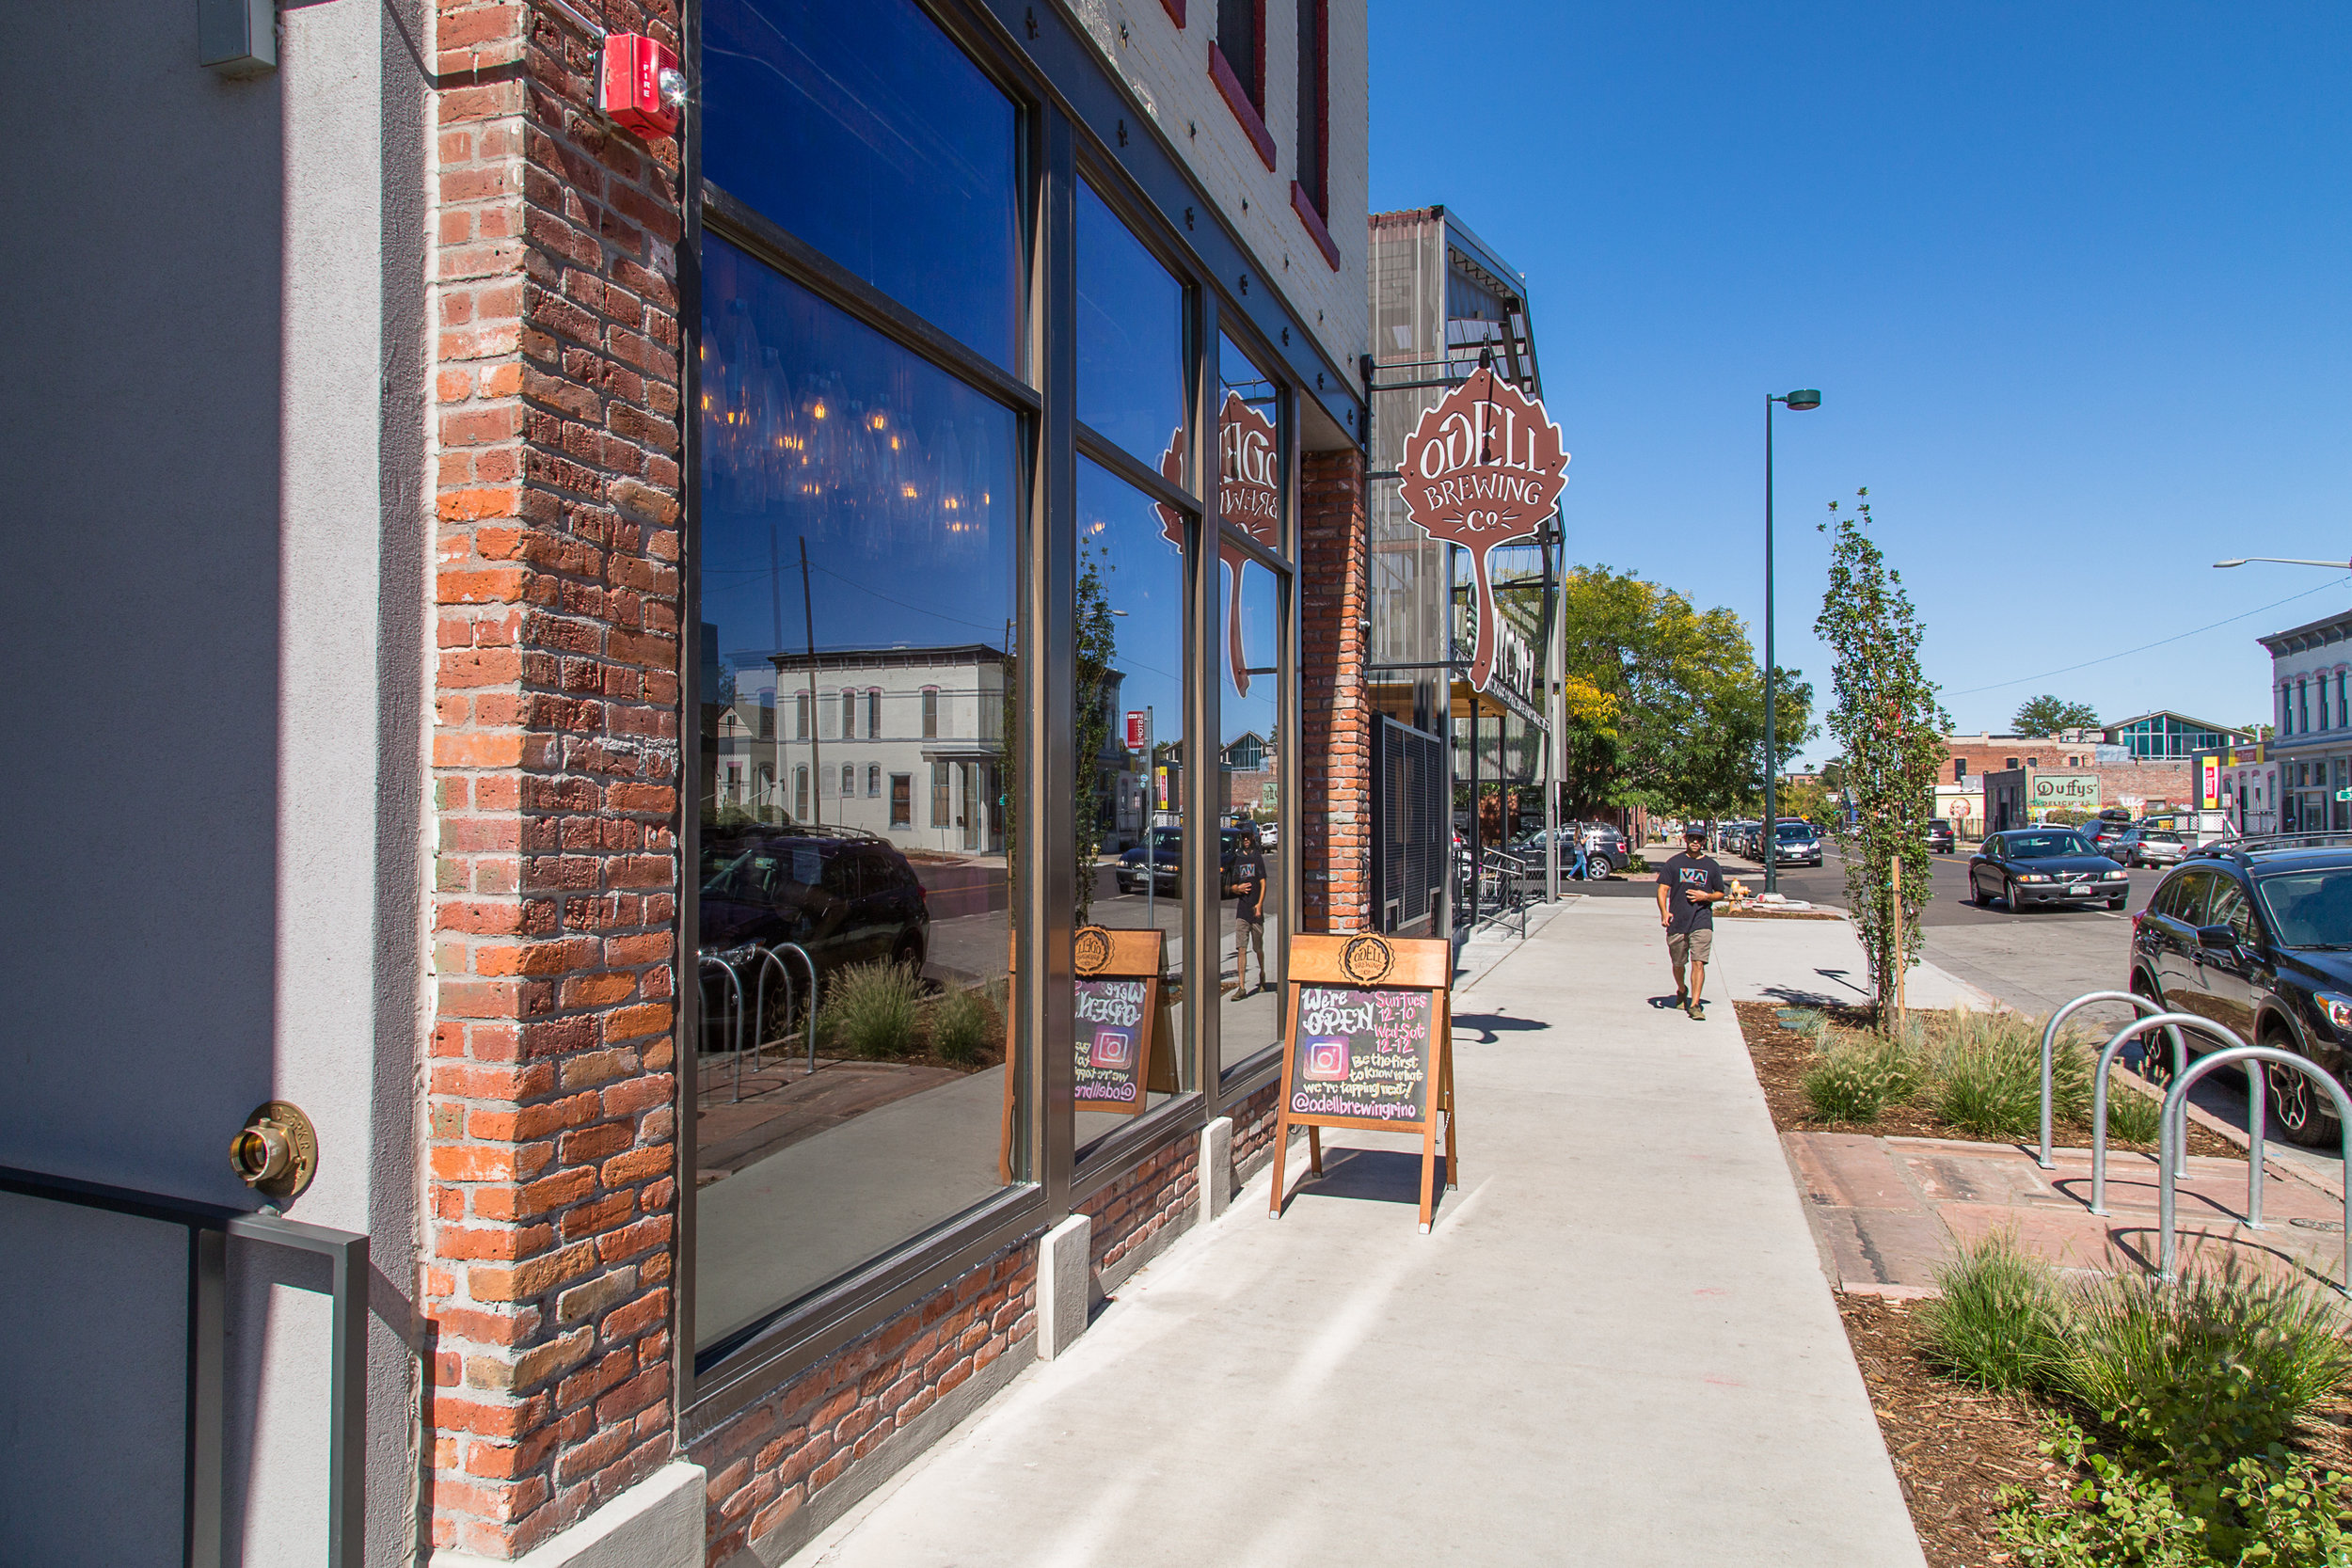 PROJECT DESCRIPTION - The 30th & Larimer project included both adaptive-reuse and ground-up construction of three stand-alone facilities on one project site. The end products include retail, restaurant, office, fitness, brewery and other ancillary uses.